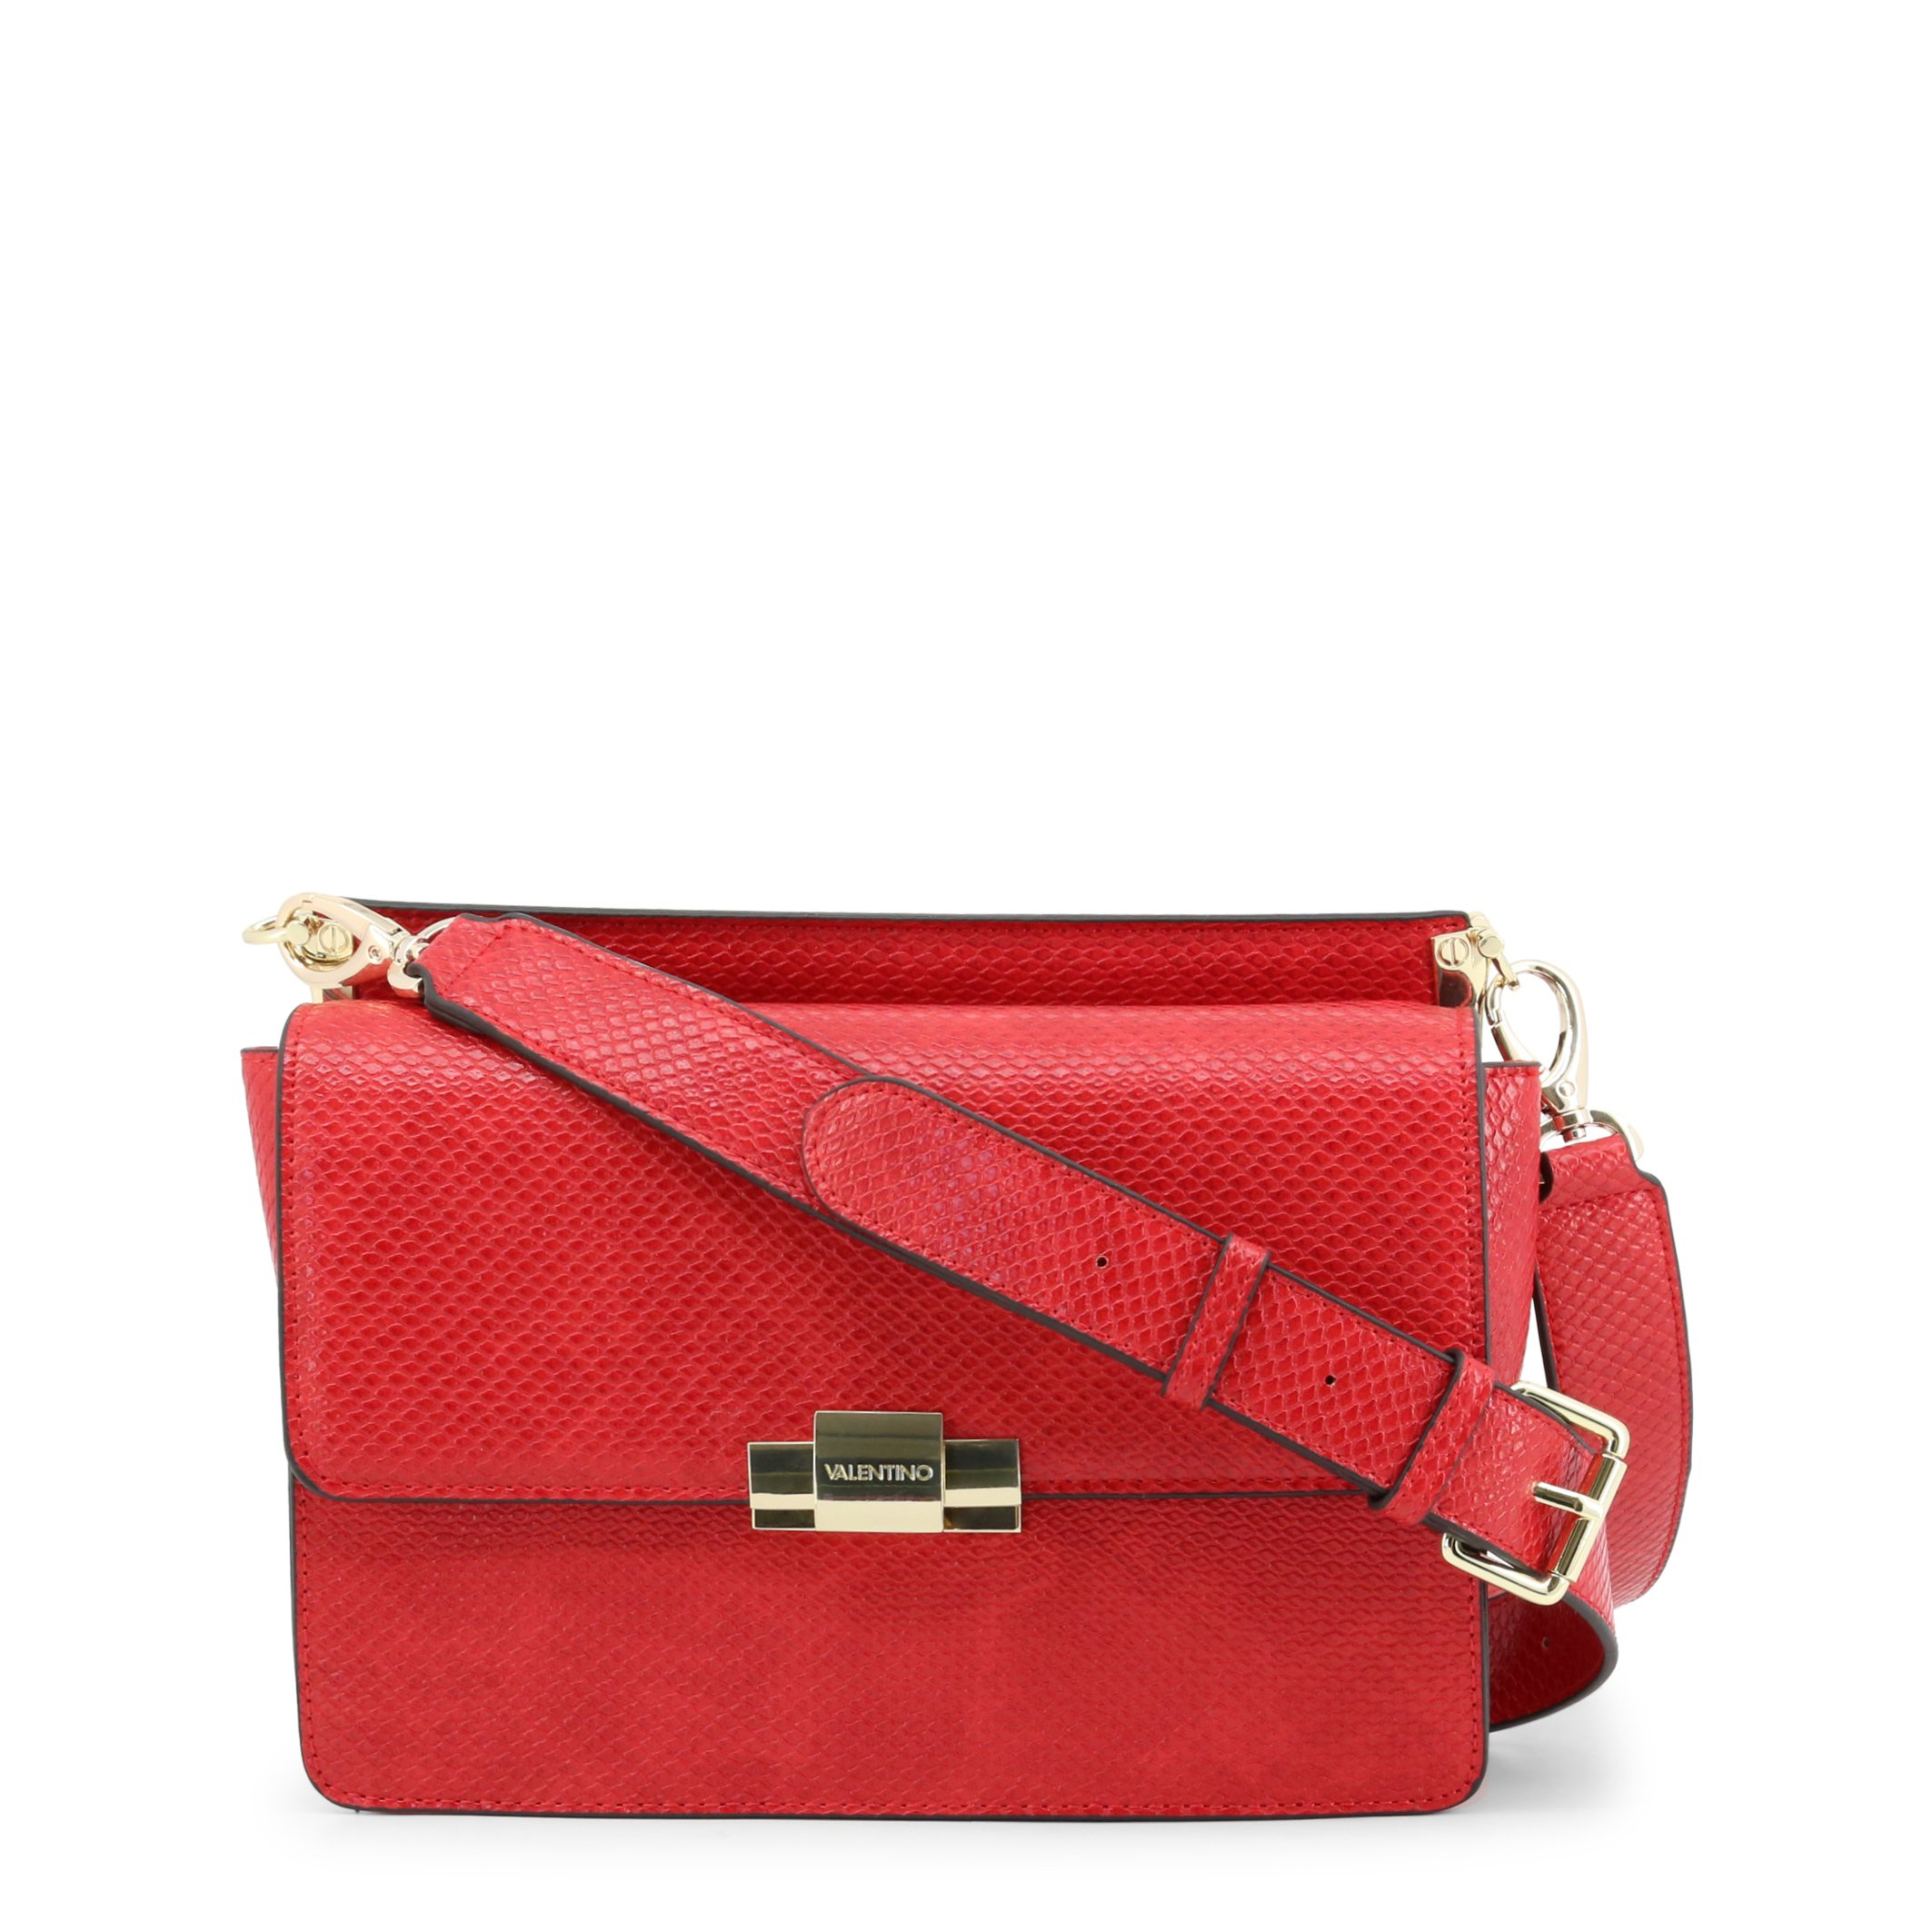 Valentino by Mario Valentino Women's Clutch Bag Various Colours ROSALIE-VBS4NE01 - red NOSIZE